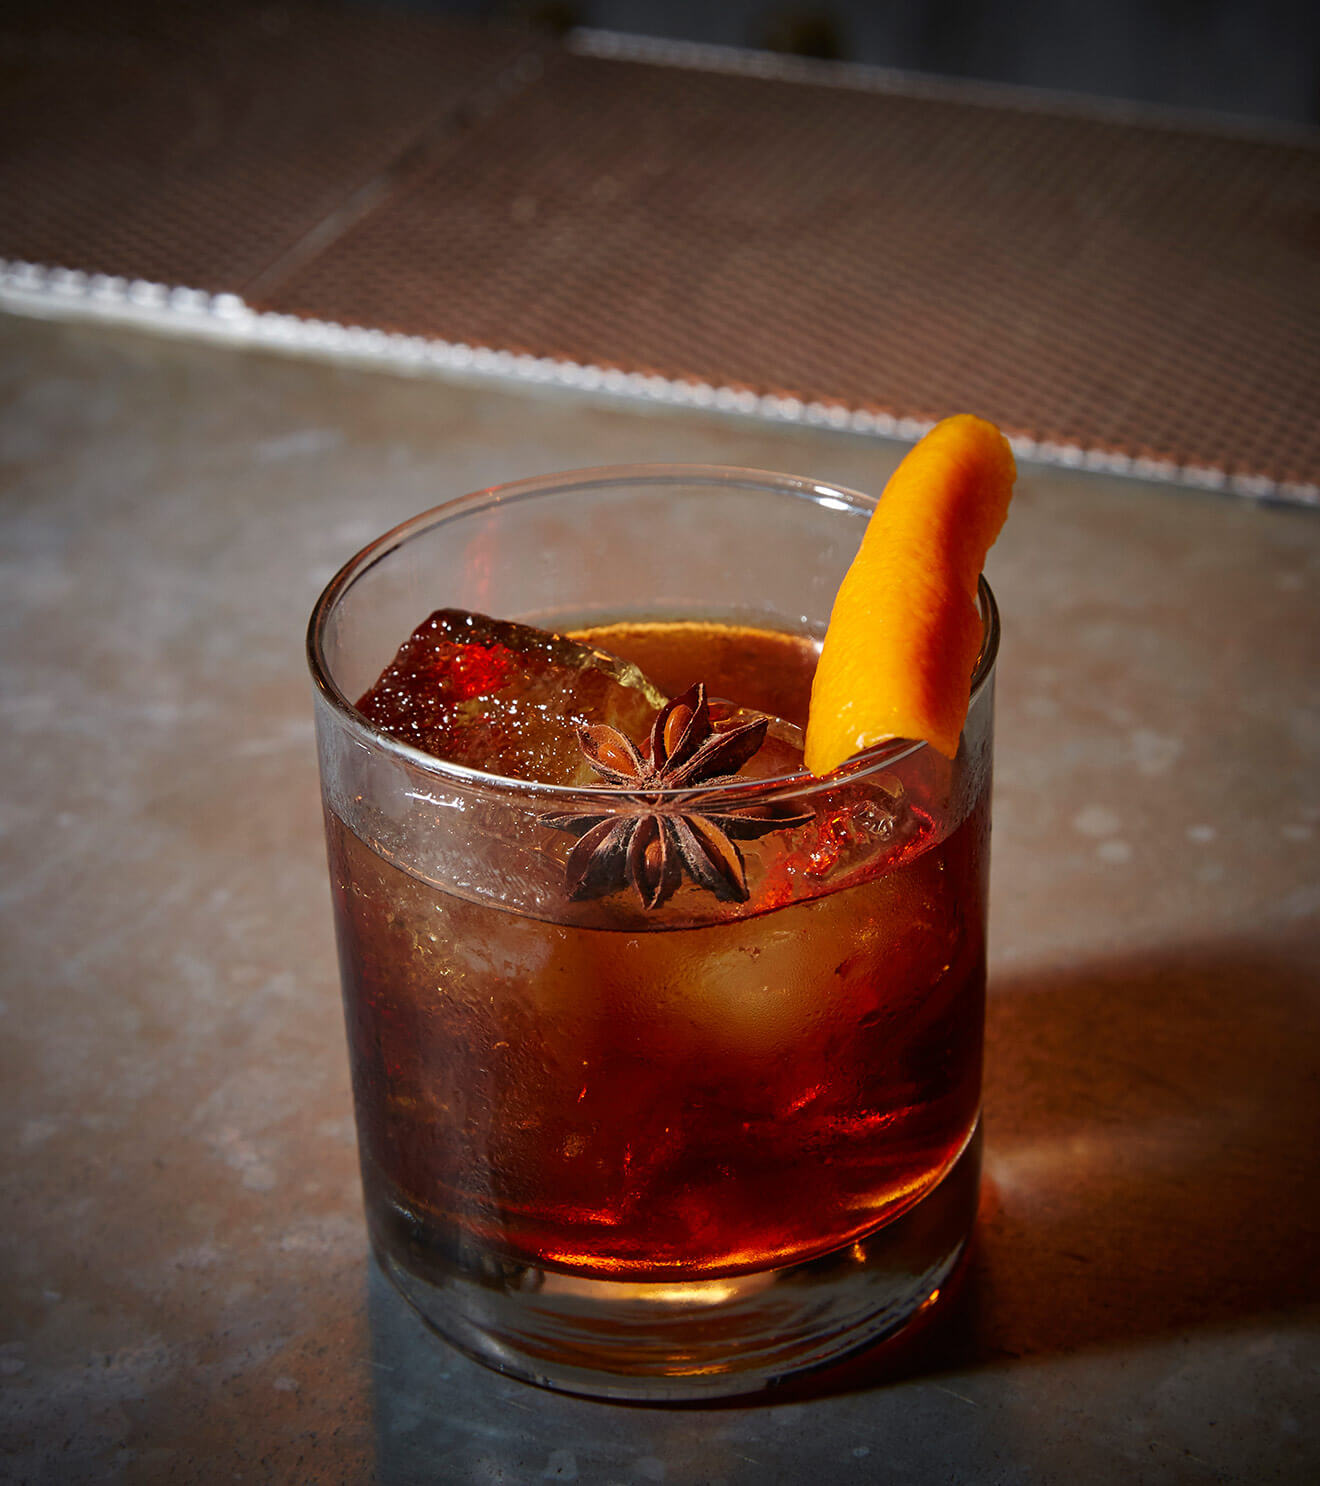 Jäger Negroni cocktail recipe, what's chilling right now